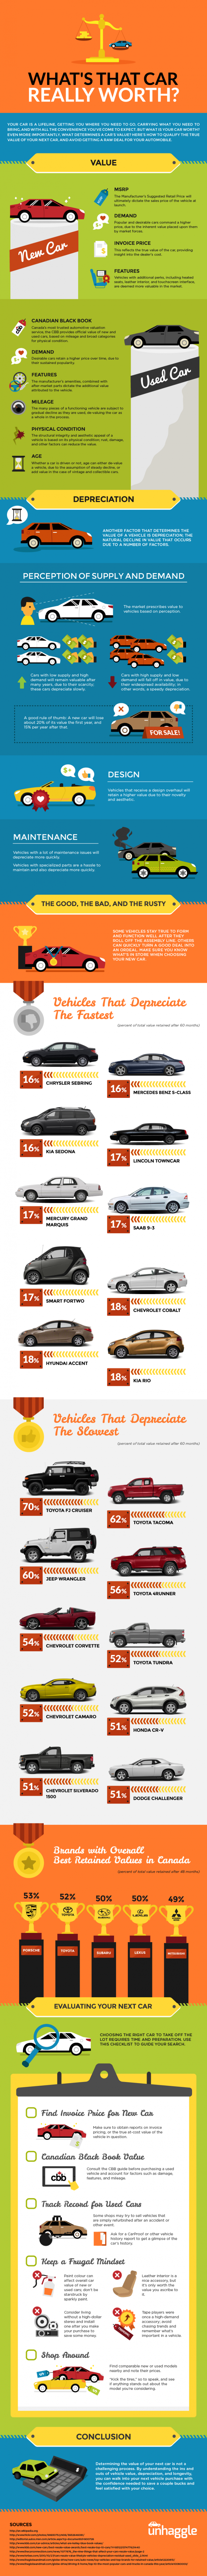 whats-that-car-really-worth-infographic